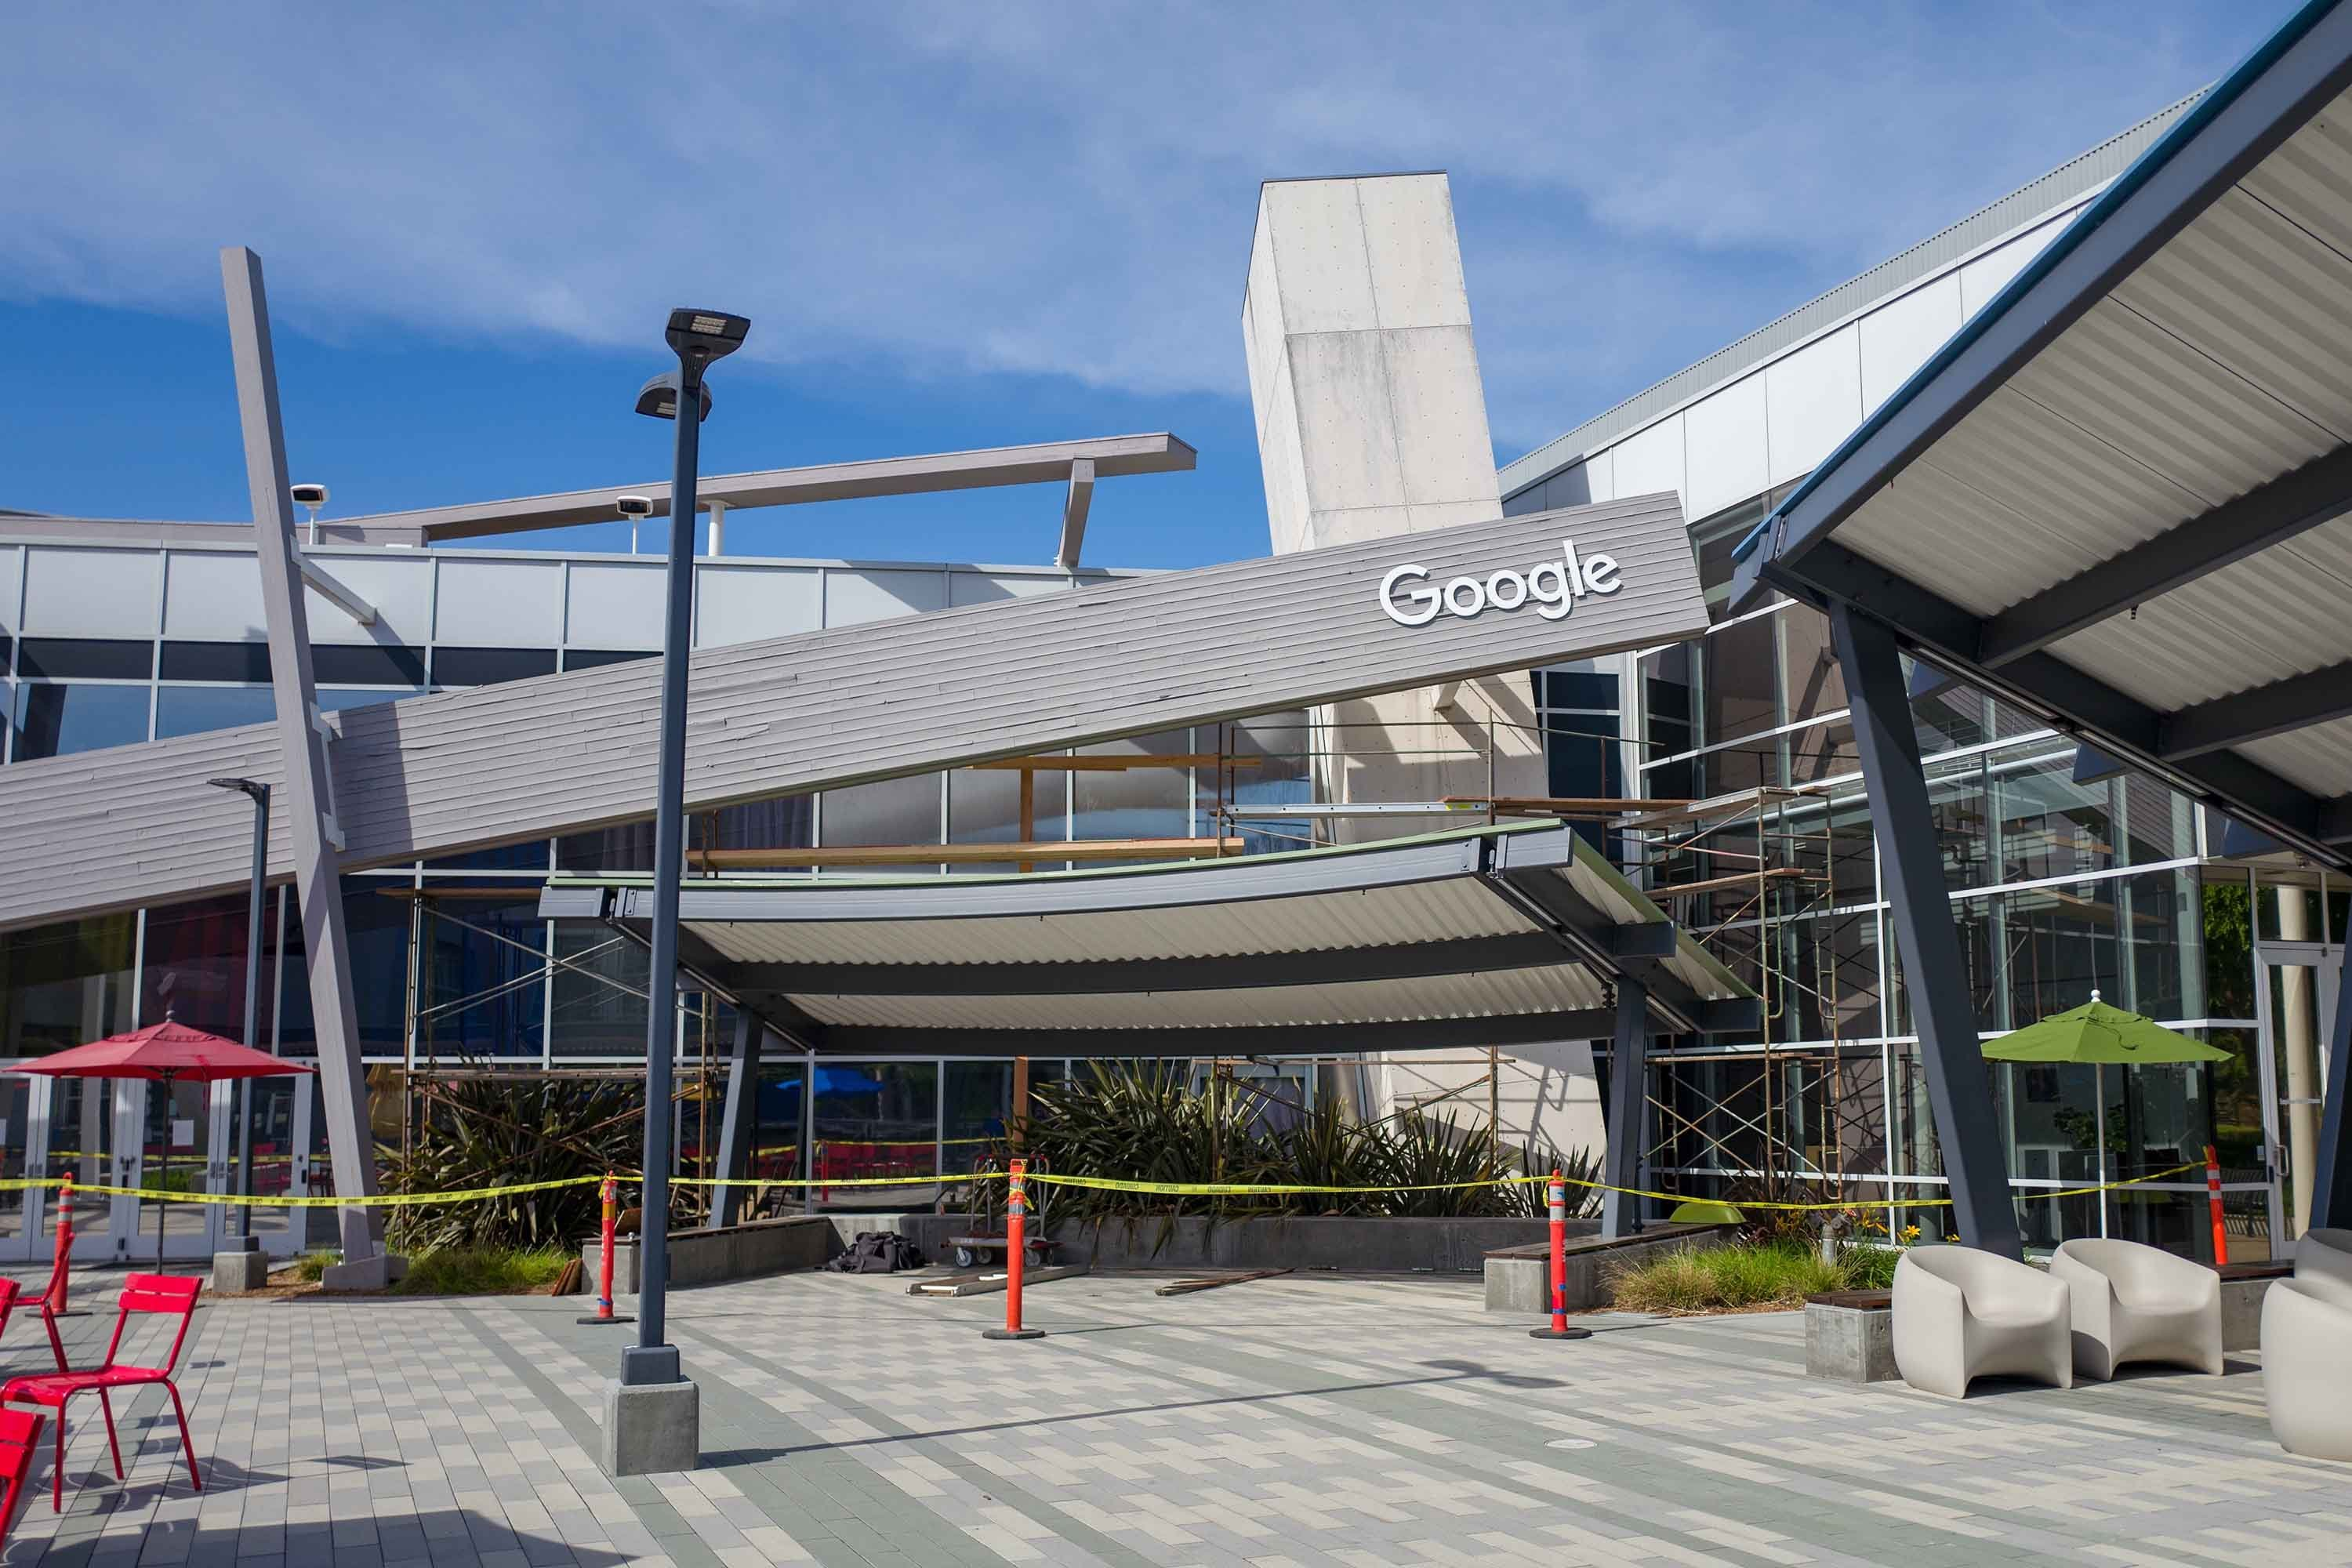 Google is collecting health data on millions of Americans